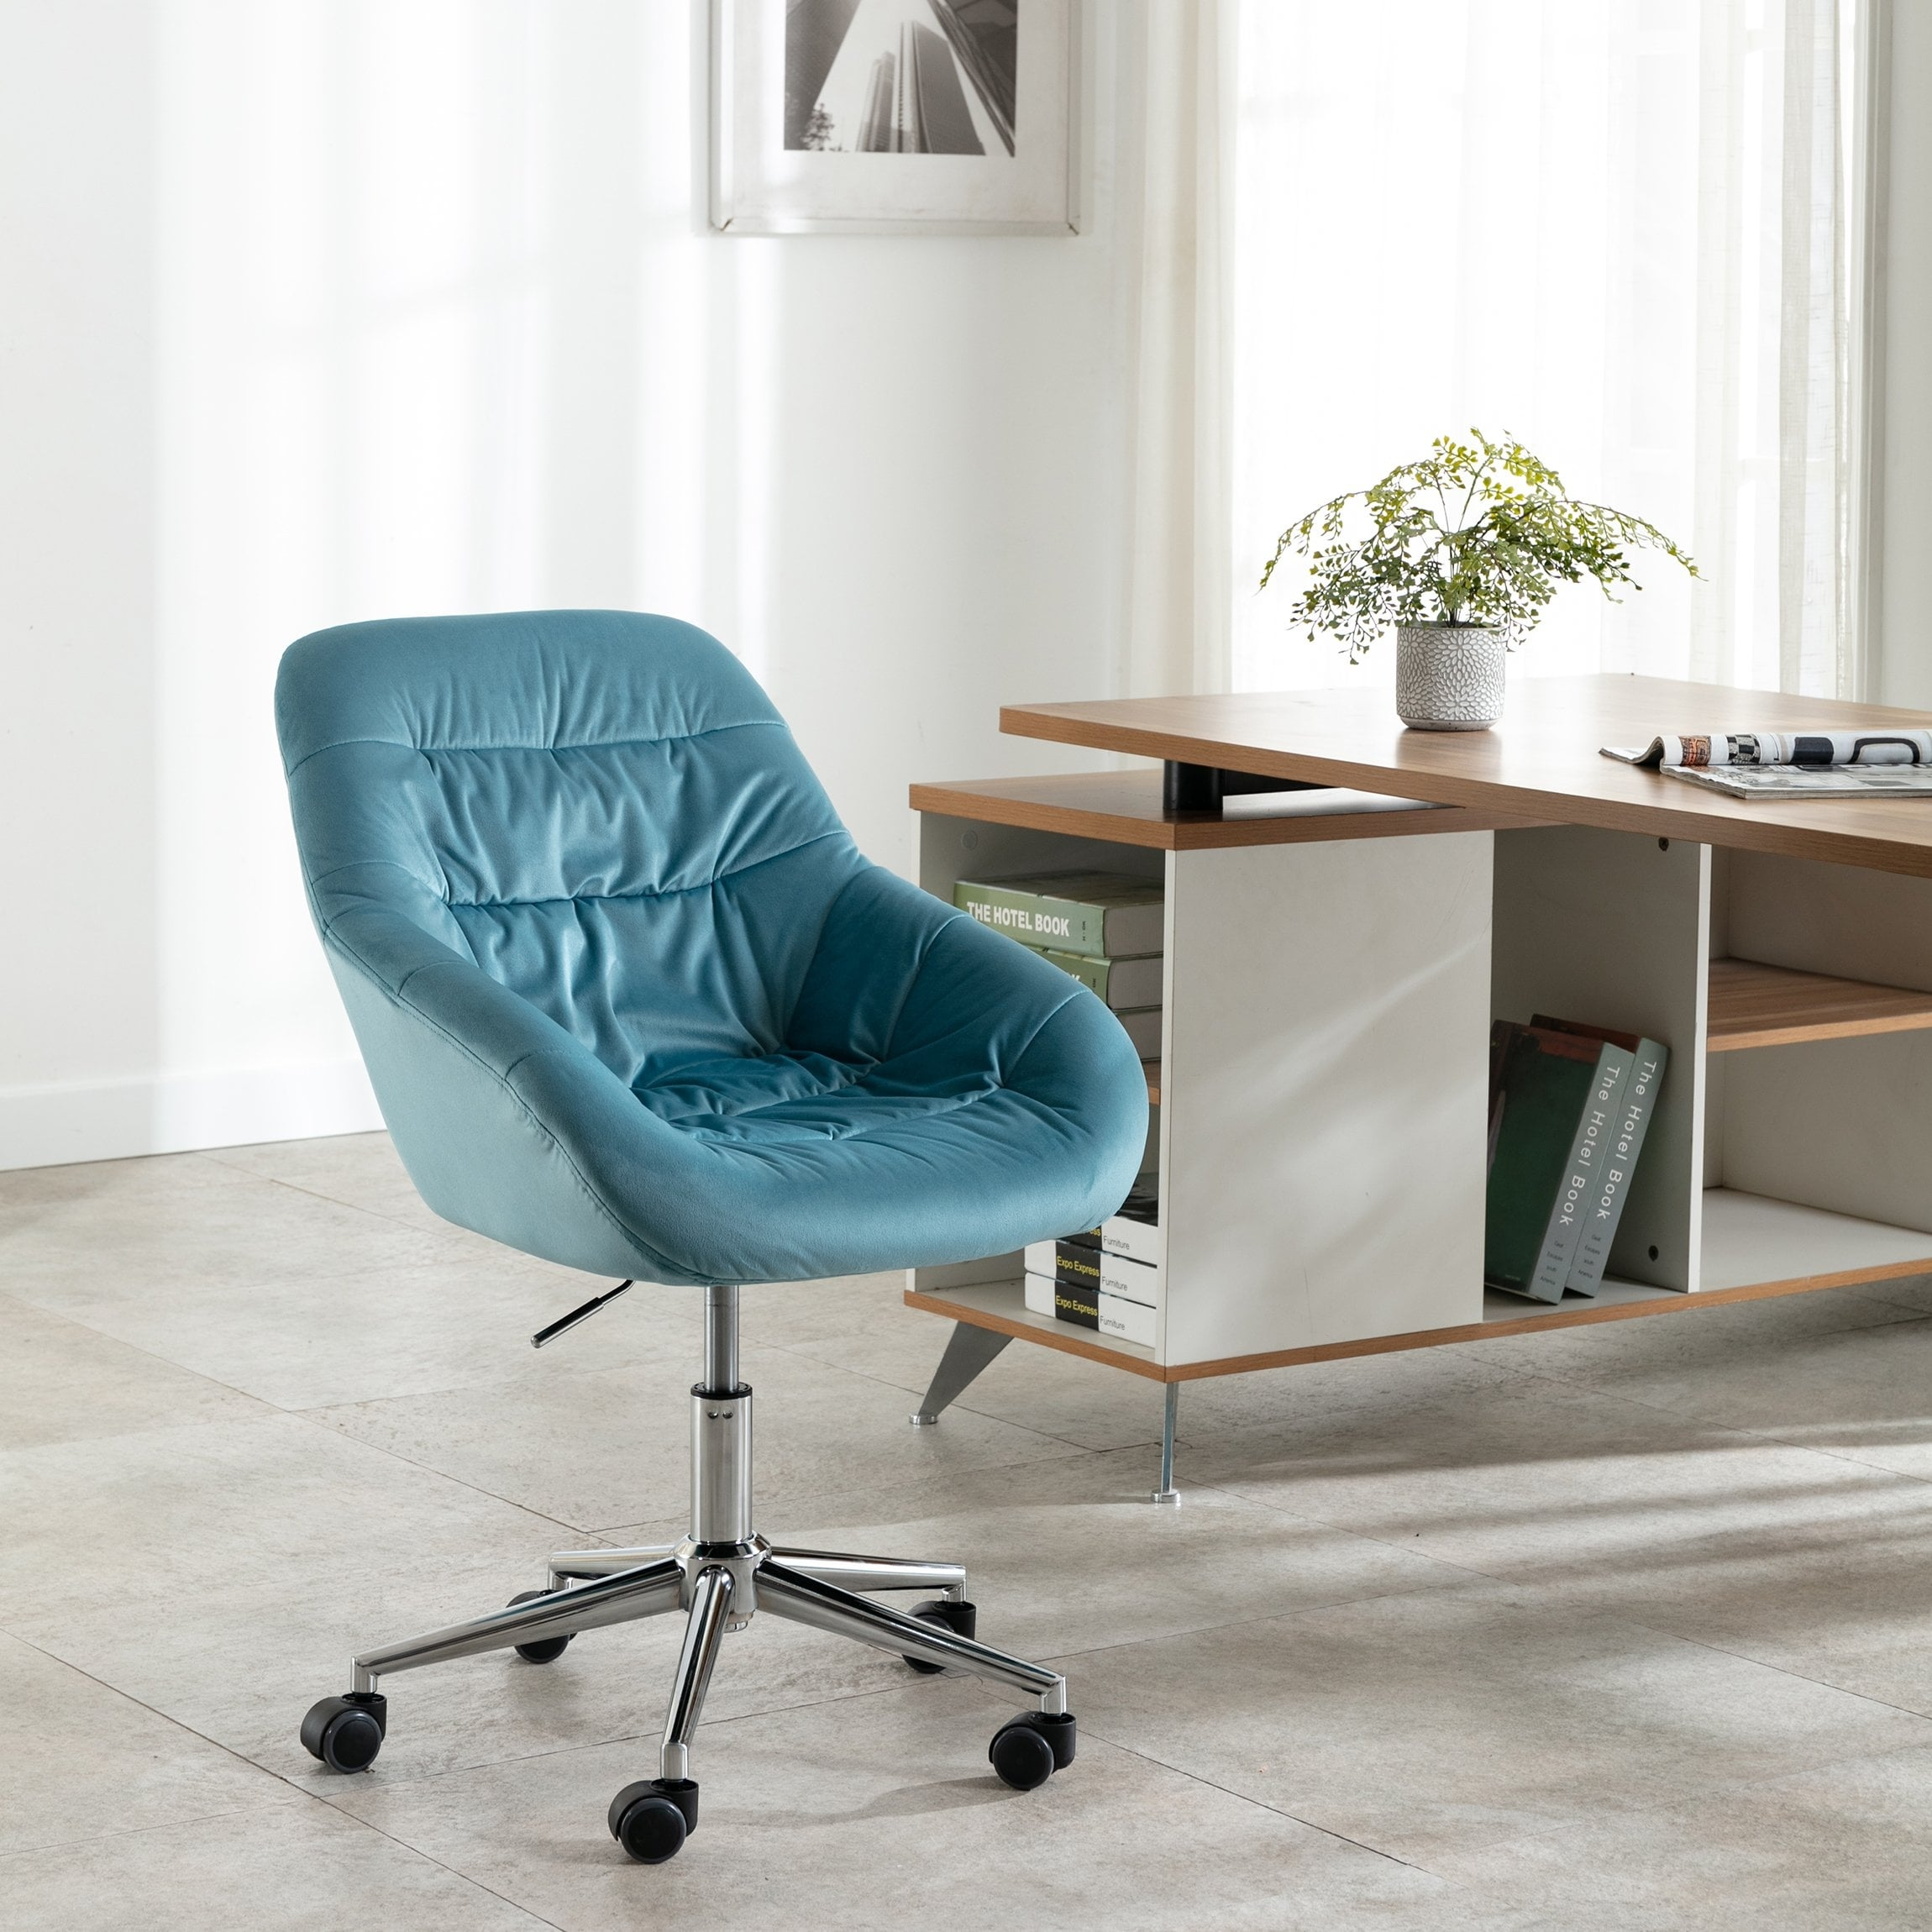 Image of: Shop Black Friday Deals On Home Office Swivel Desk Task Chair Overstock 31733771